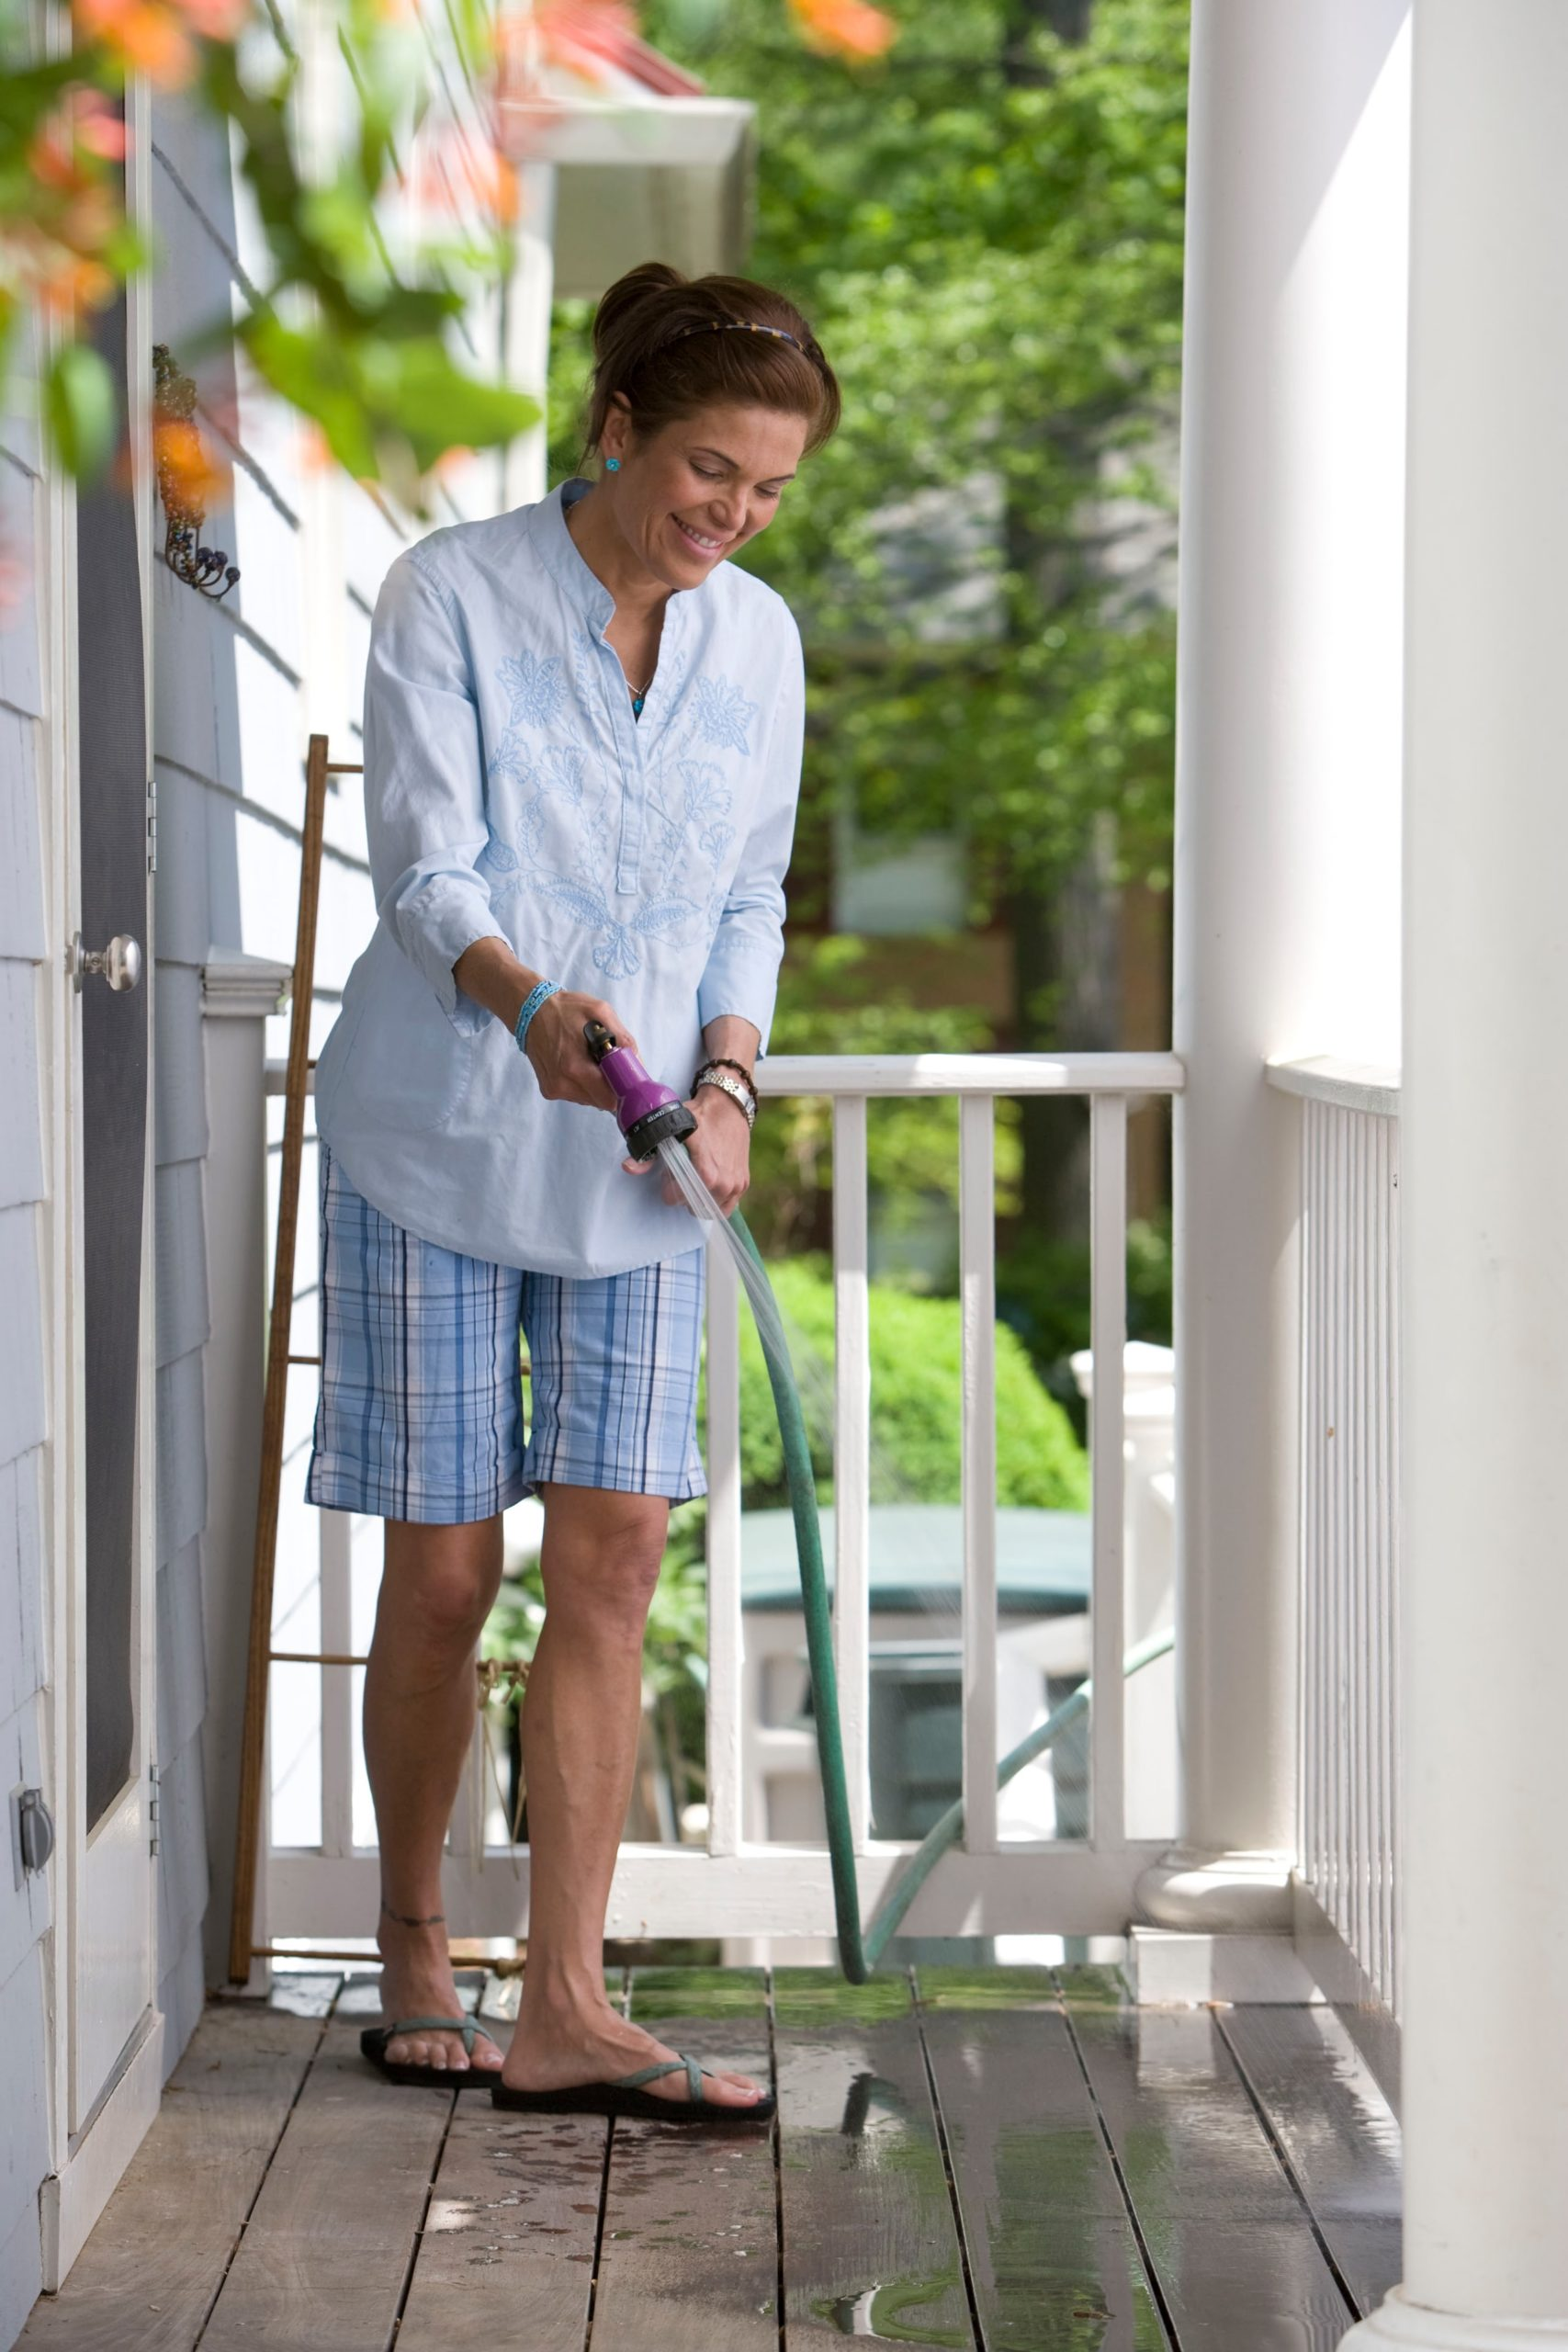 Woman using watering hose on front porch